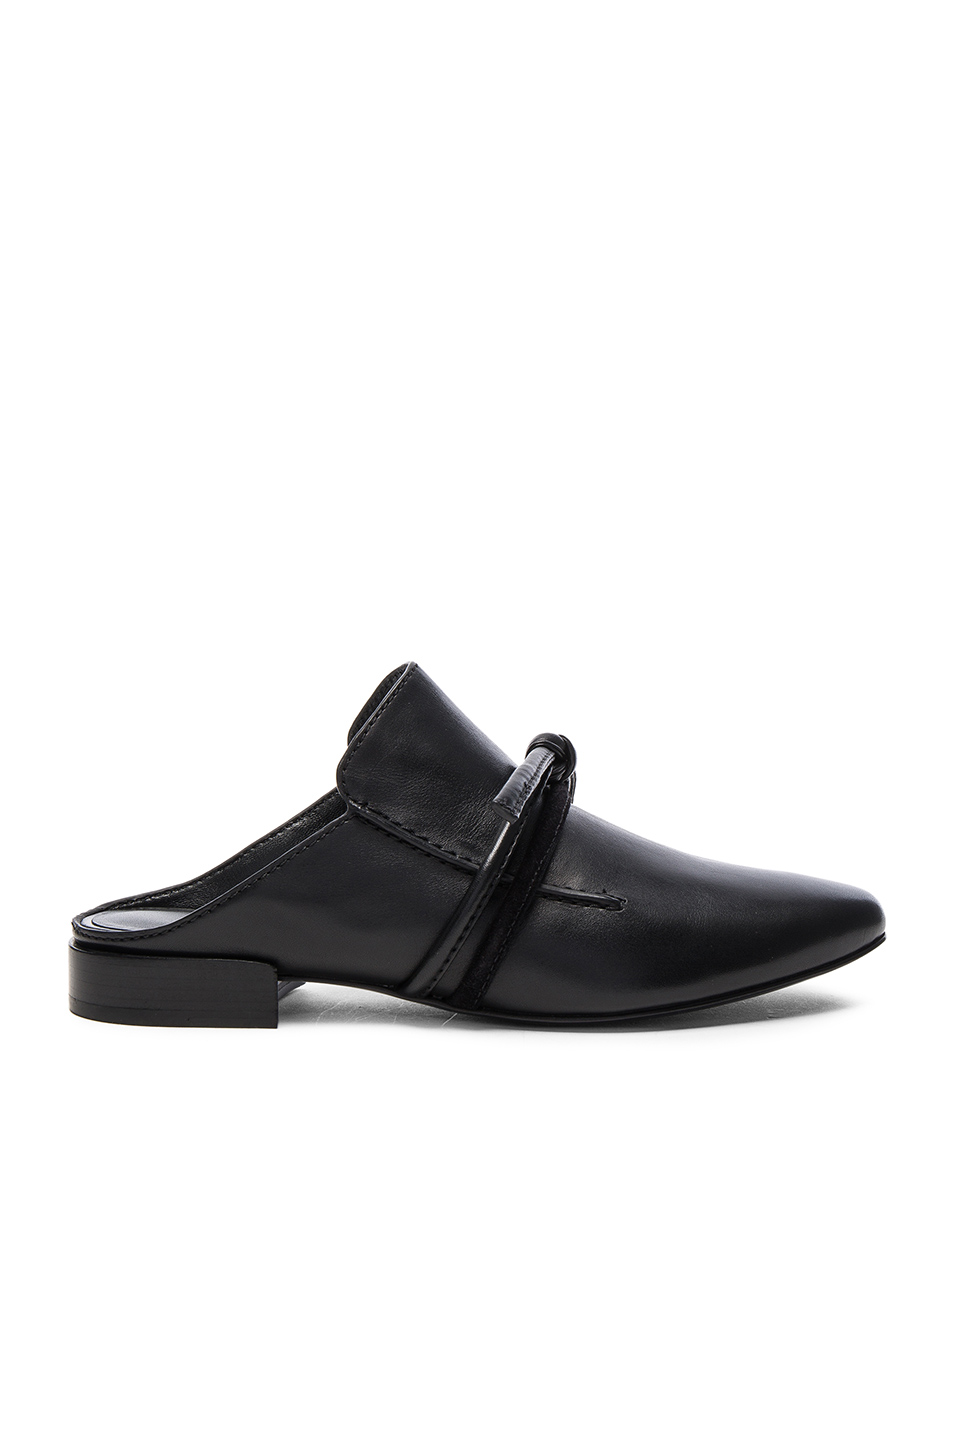 Louie suede-trimmed leather slippers